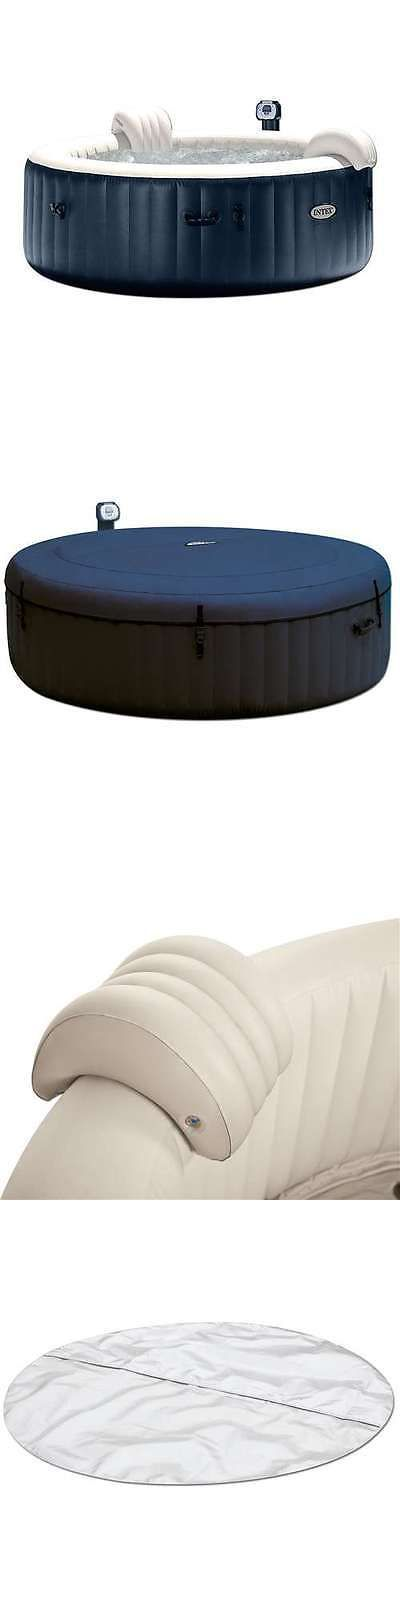 25 best ideas about jacuzzi gonflable intex on pinterest jacuzzi intex jacuzzi gonflable and. Black Bedroom Furniture Sets. Home Design Ideas